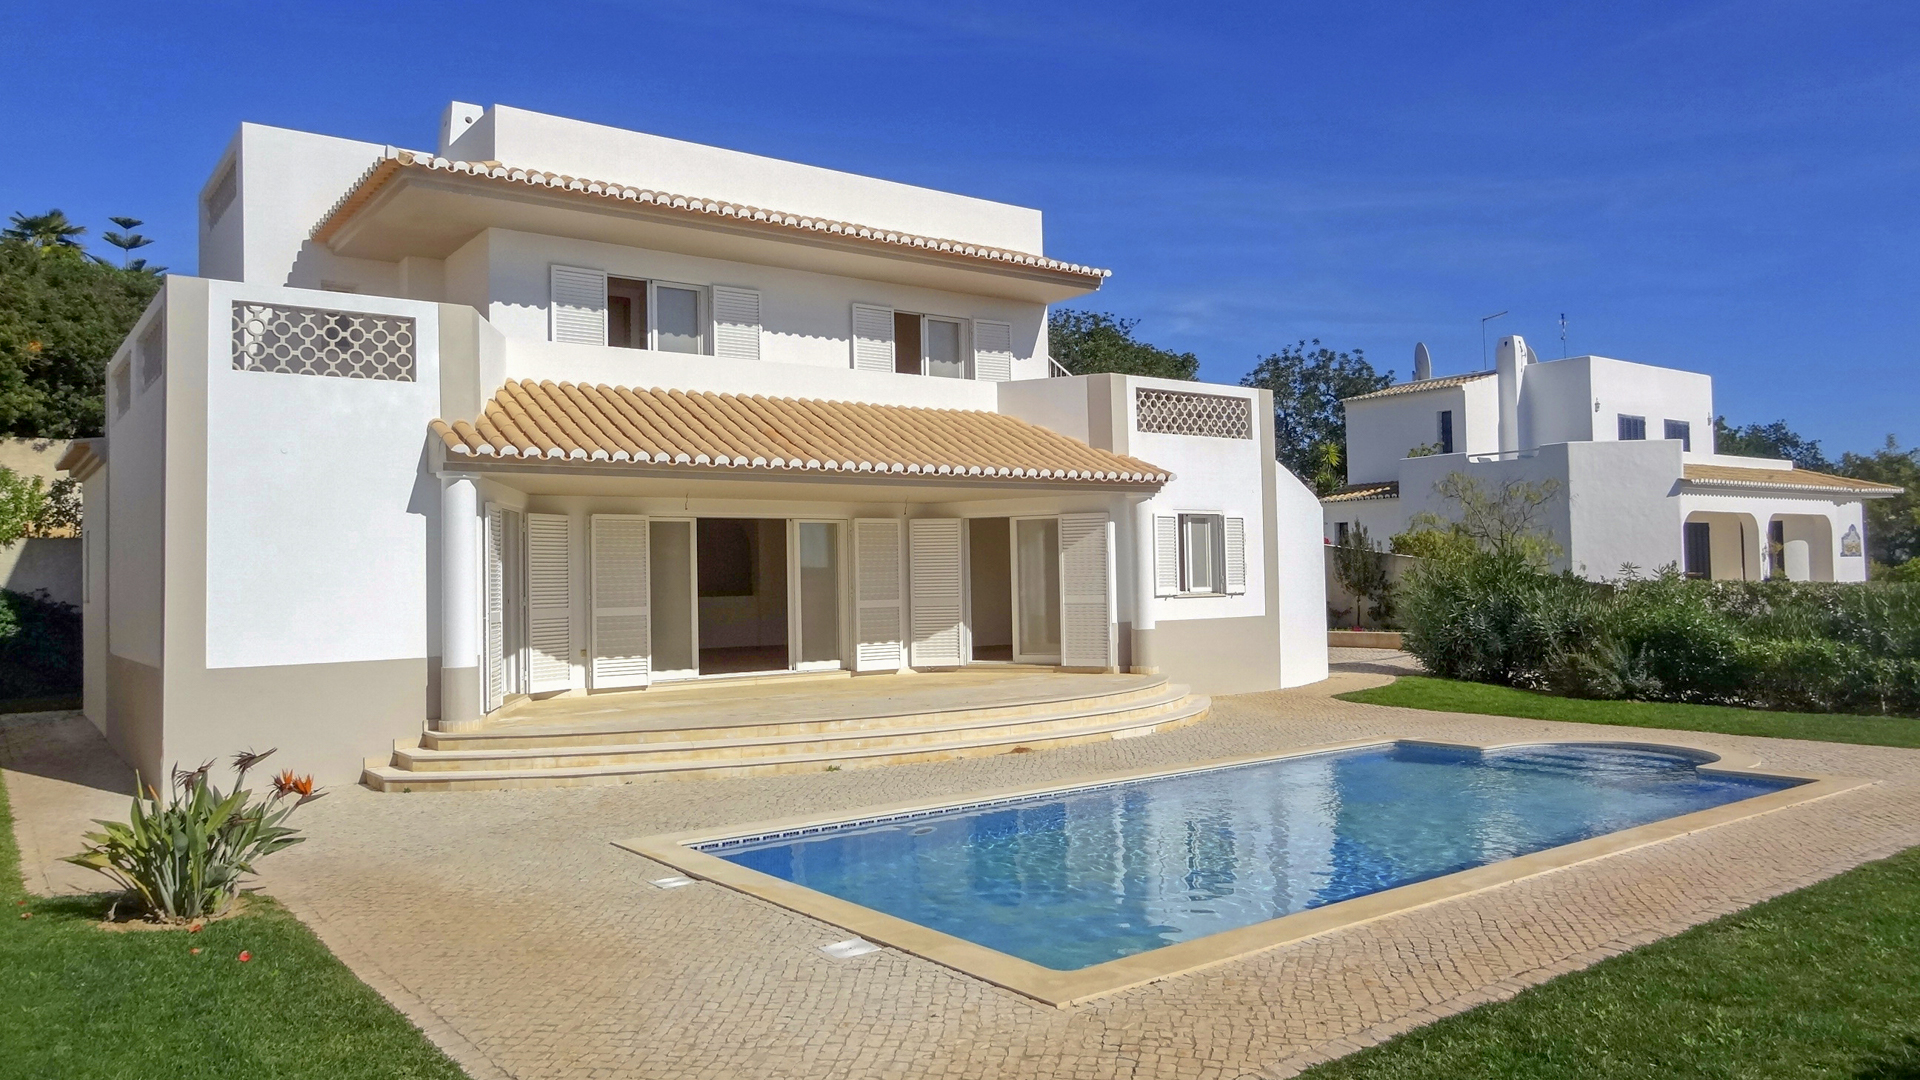 Brand New 3 Bedroom Villa on Secure Complex in Albufeira | S5129 3 bedroom villa on secure complex in Albufeira, with a private pool. It's located close to beaches, amenities and golf and it could have an excellent rental income.